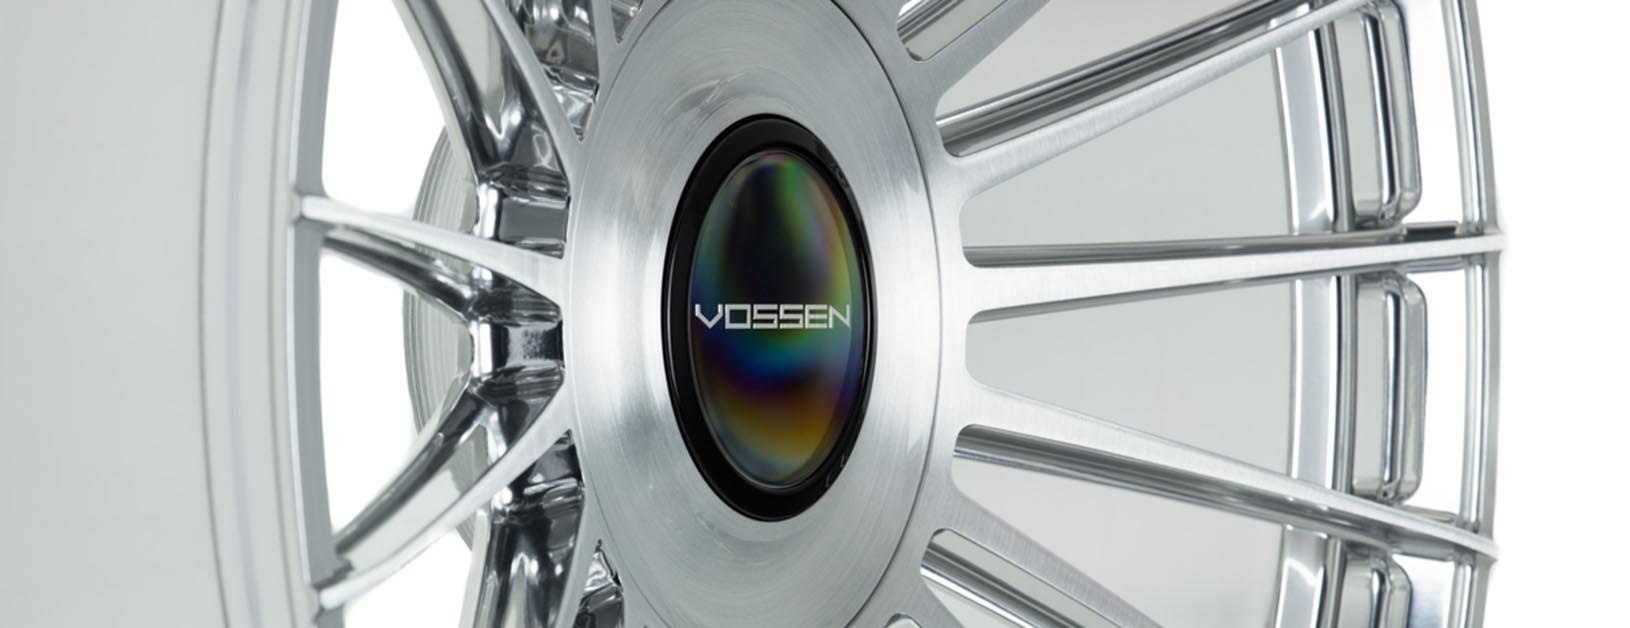 COMING-SOON-Vossen-Forged-S17-13-Wheel-C04-Gloss-Clear-©-Vossen-Wheels-2018-1028-1 (1)